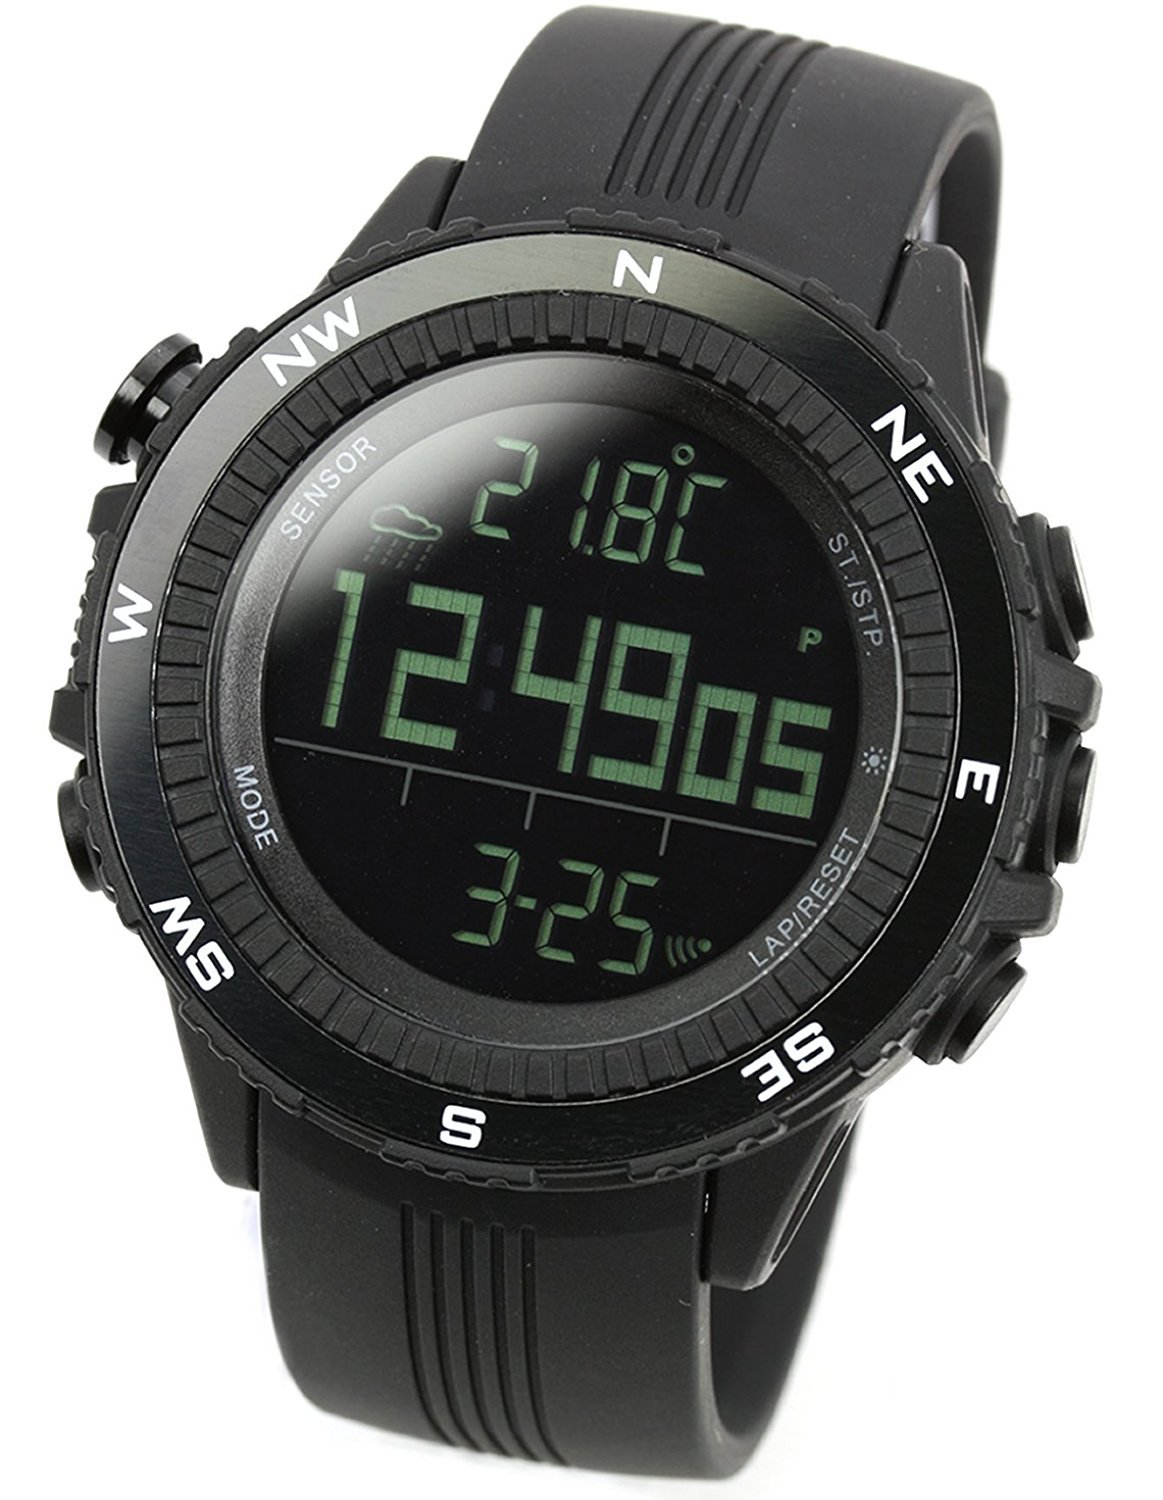 New LAD WEATHER Watch Outdoor Sports Heights Temperature Normal LCD BL